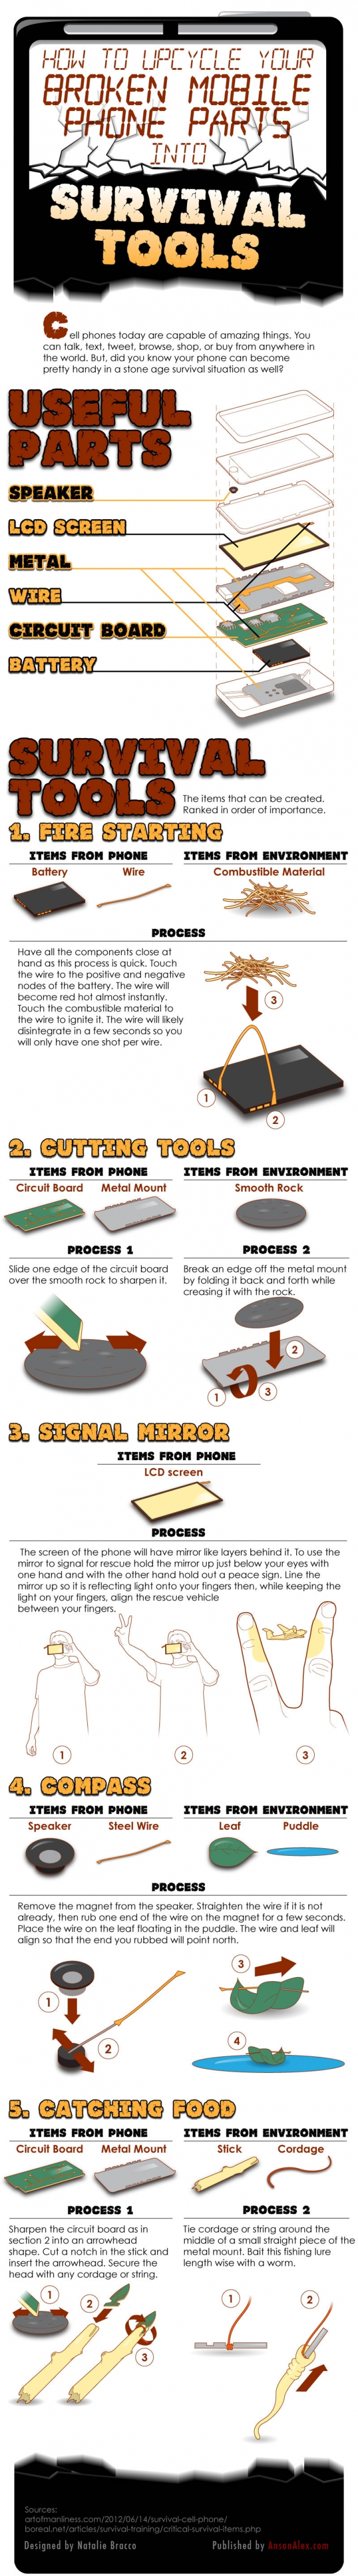 How-to-Use-Parts-Broken-Cell-Phone-as-Survival-Tools-Infographic-large